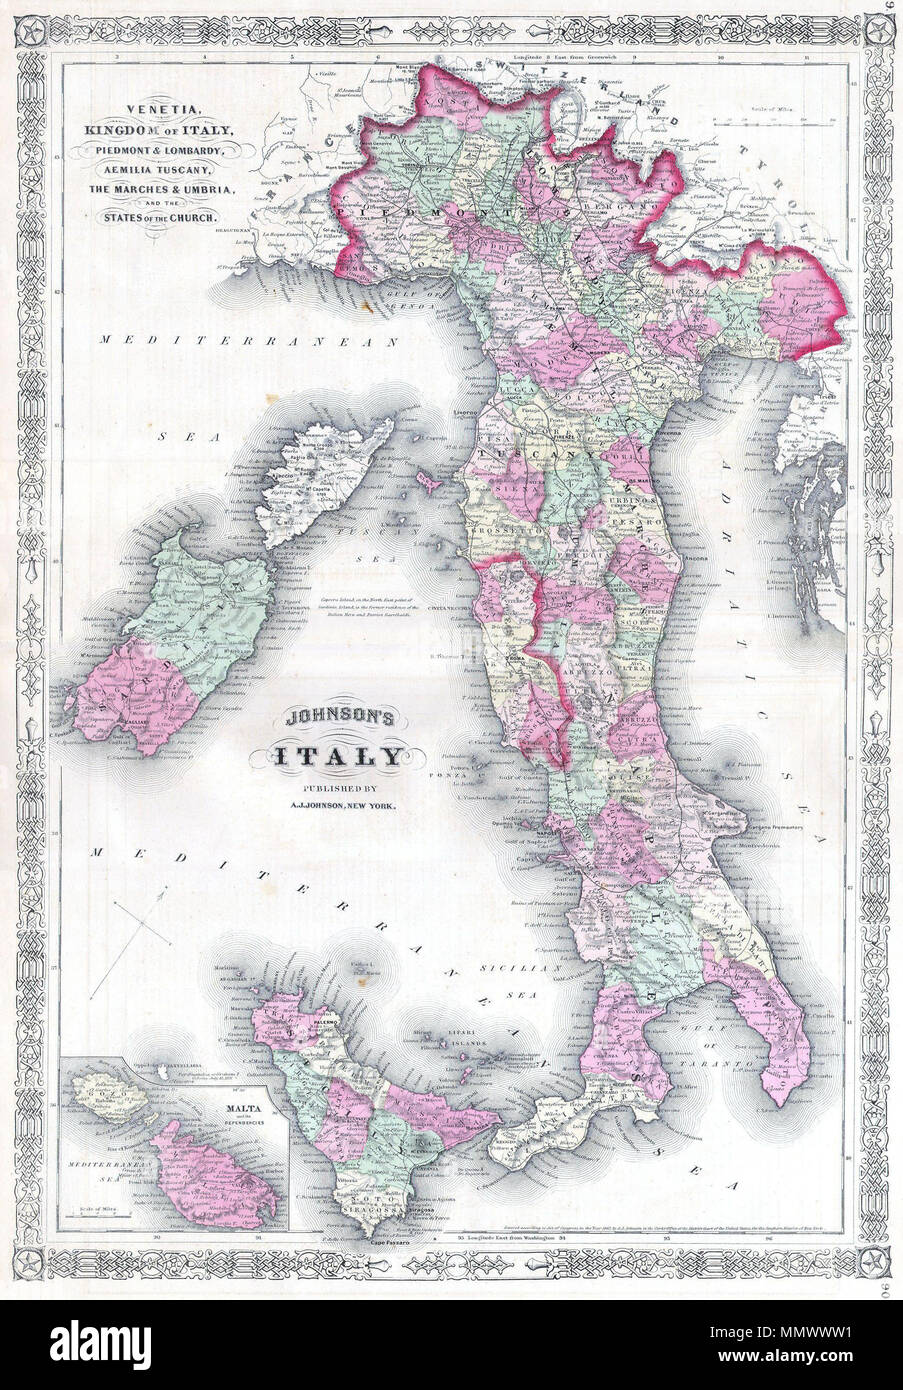 City Map Of Italy In English.English A Marvelous 1864 Map Of Italy By The American Cartographic